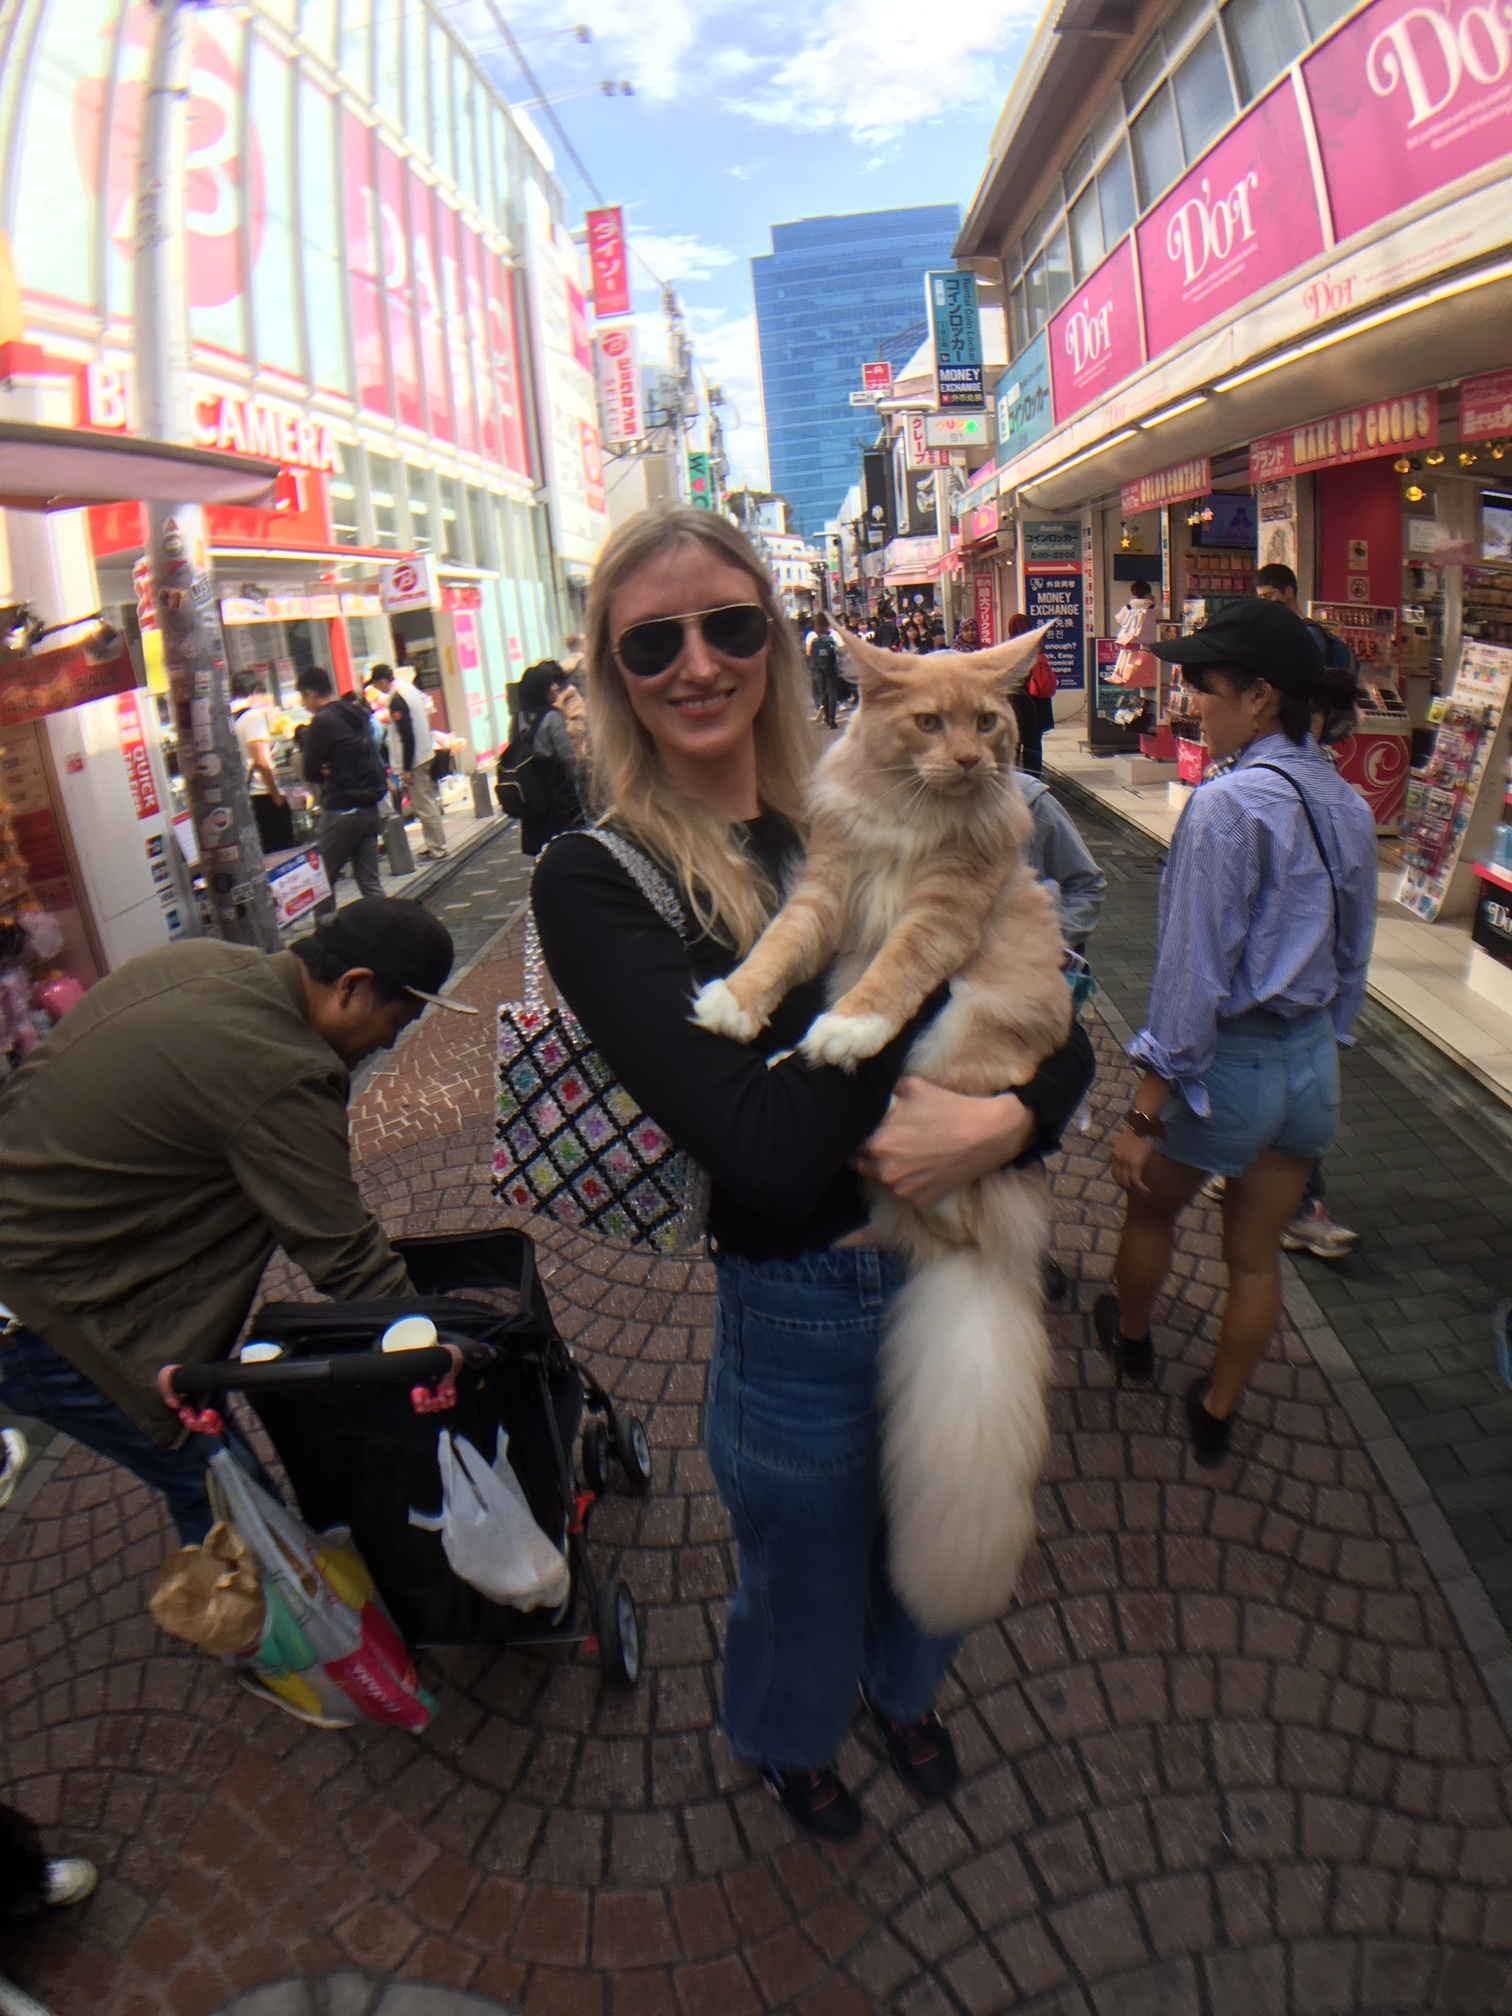 A Maincoon from a pram in Harajuku, only in Japan.